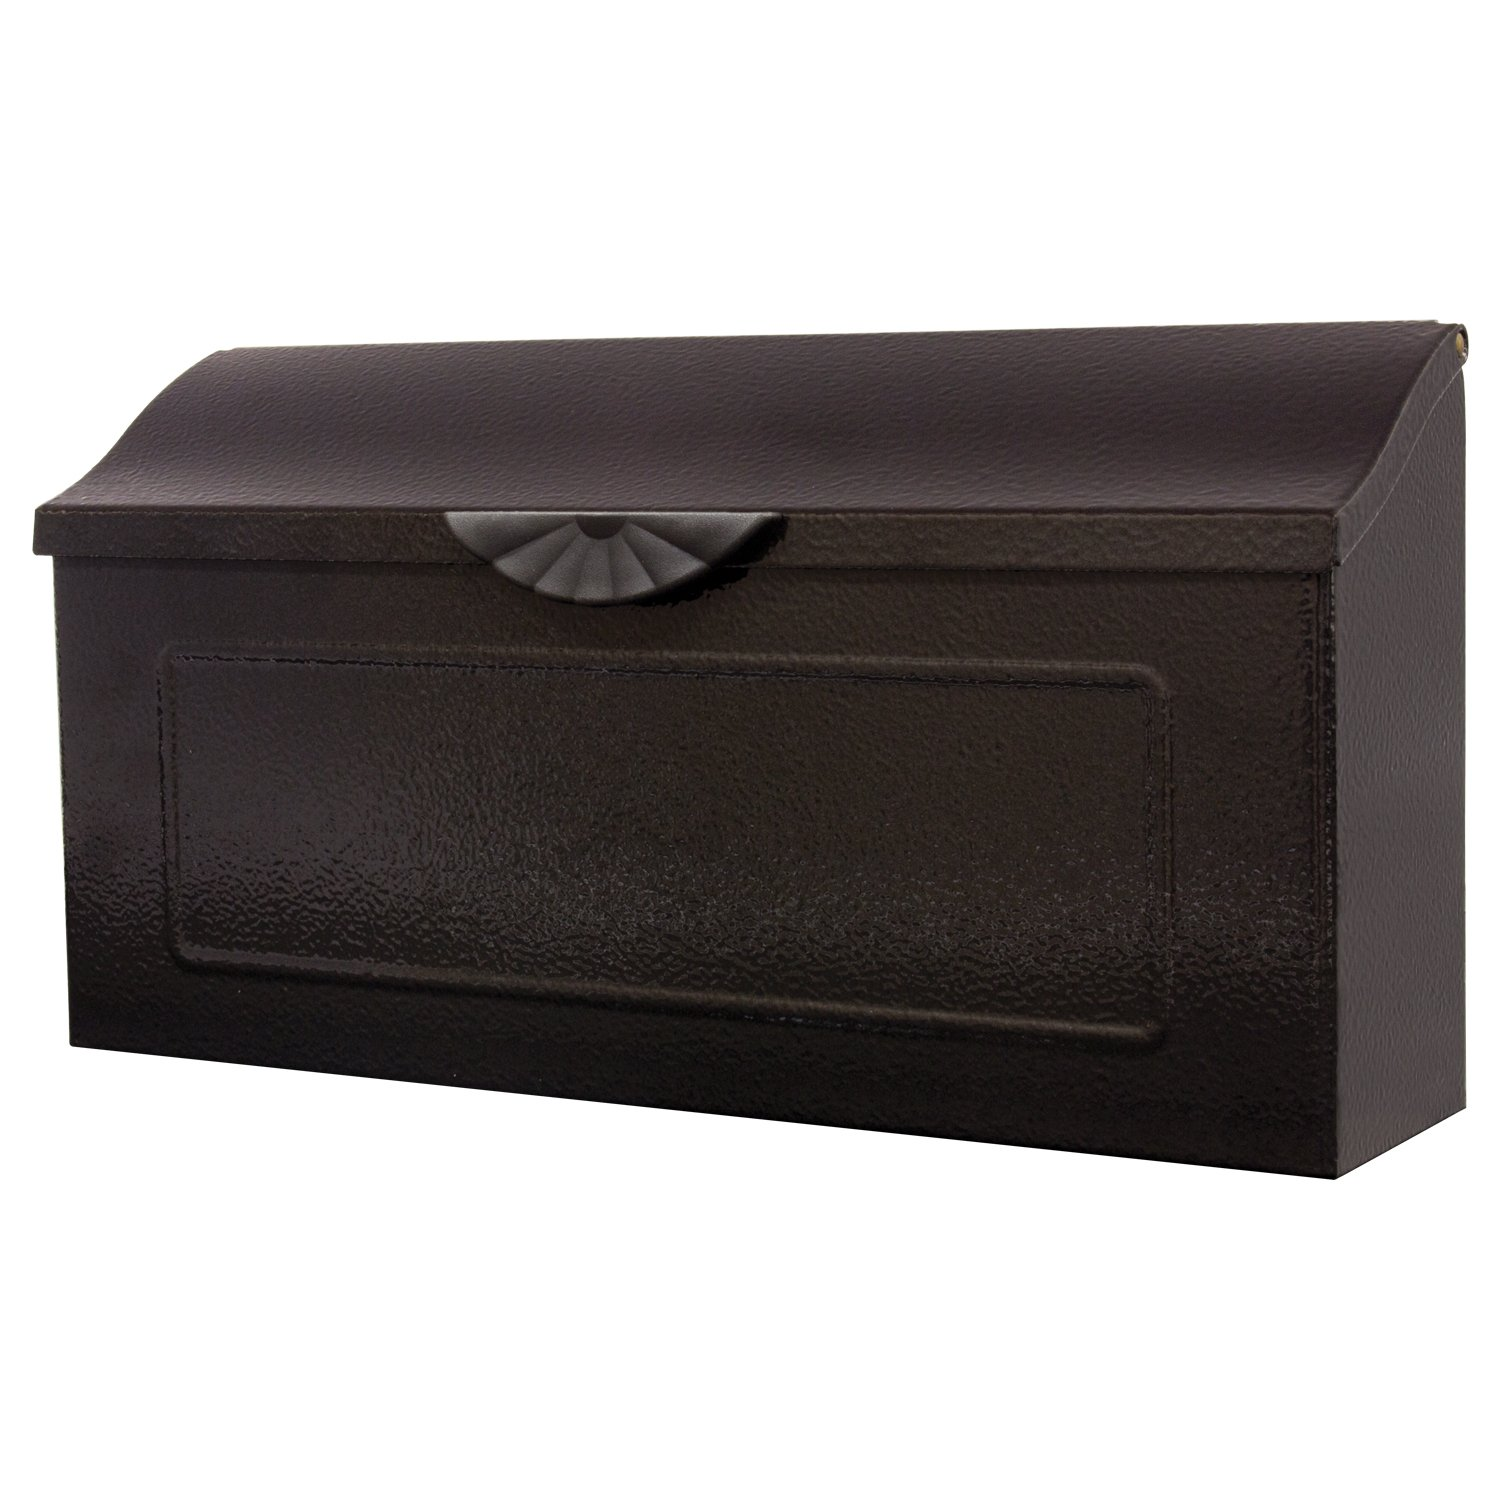 Gibraltar Mailboxes MB676ABK Amboy Decorative Mailbox Small Black